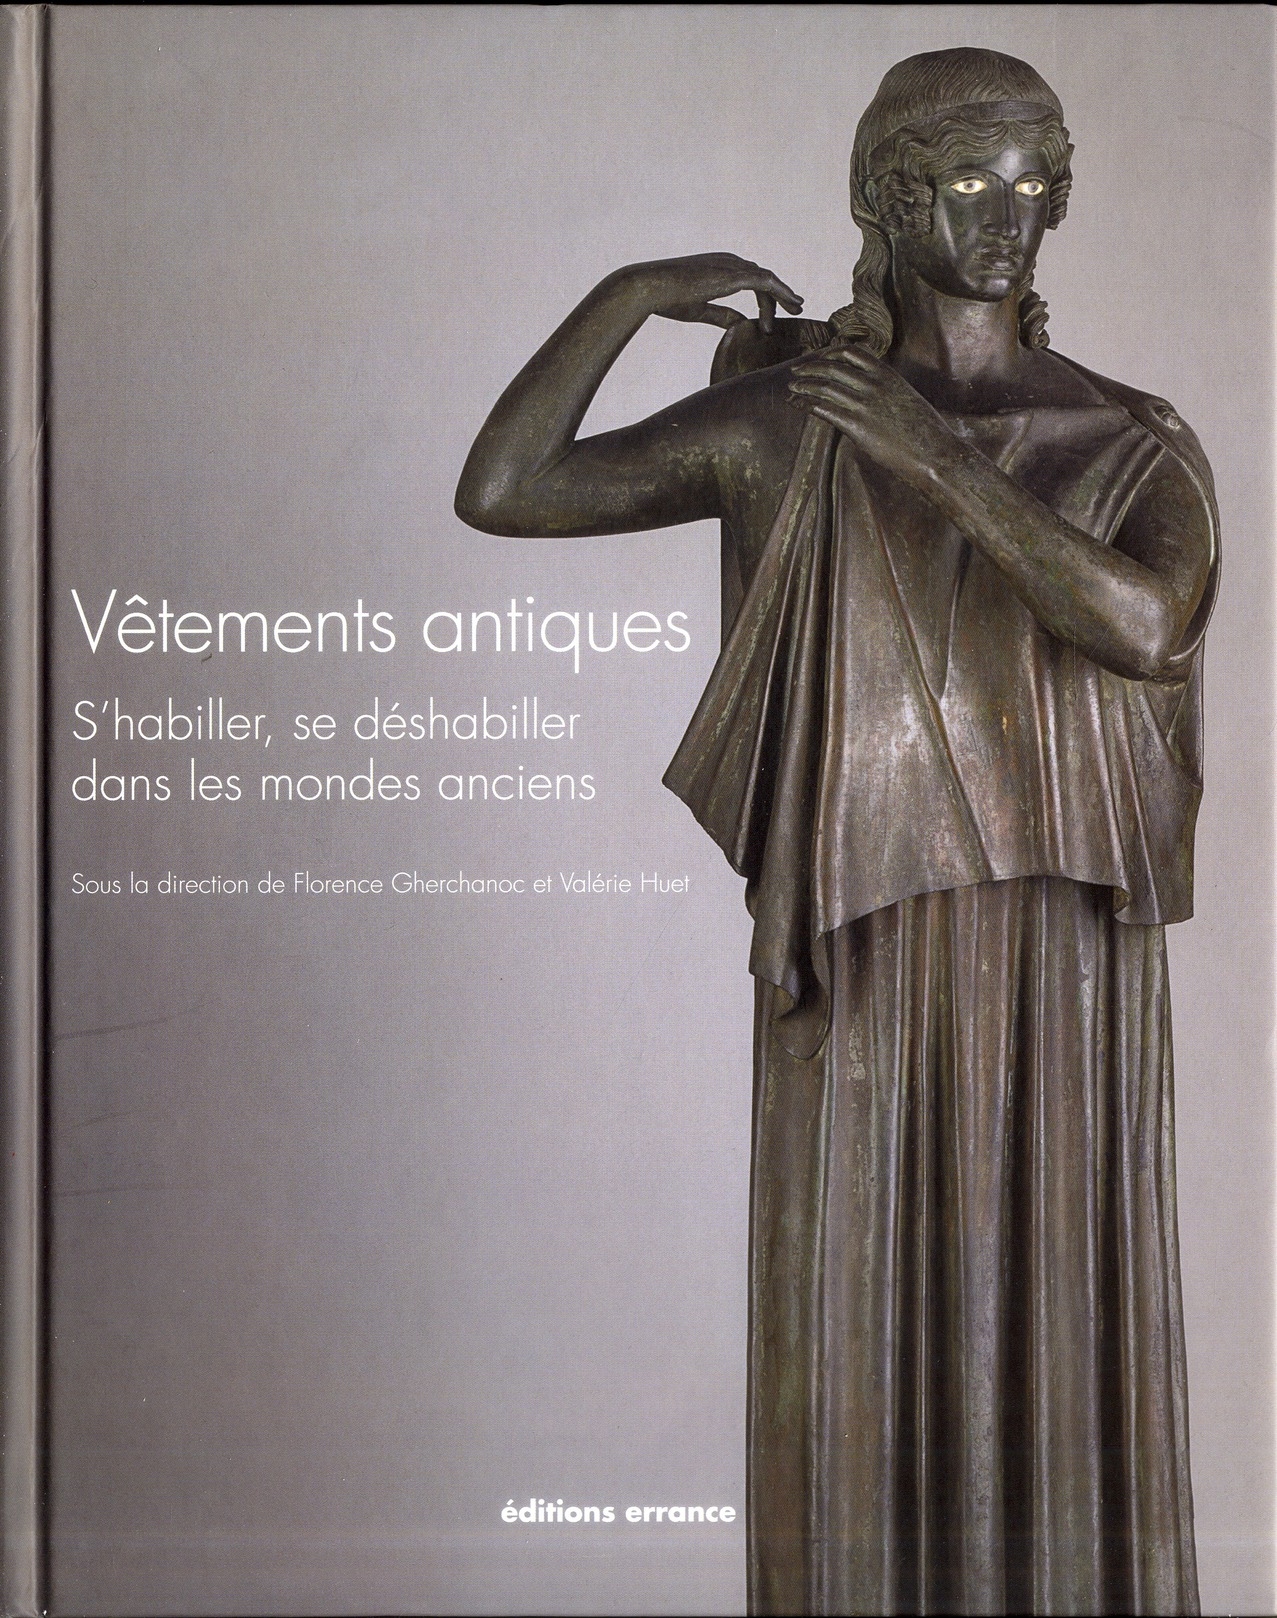 VETEMENTS ANTIQUES